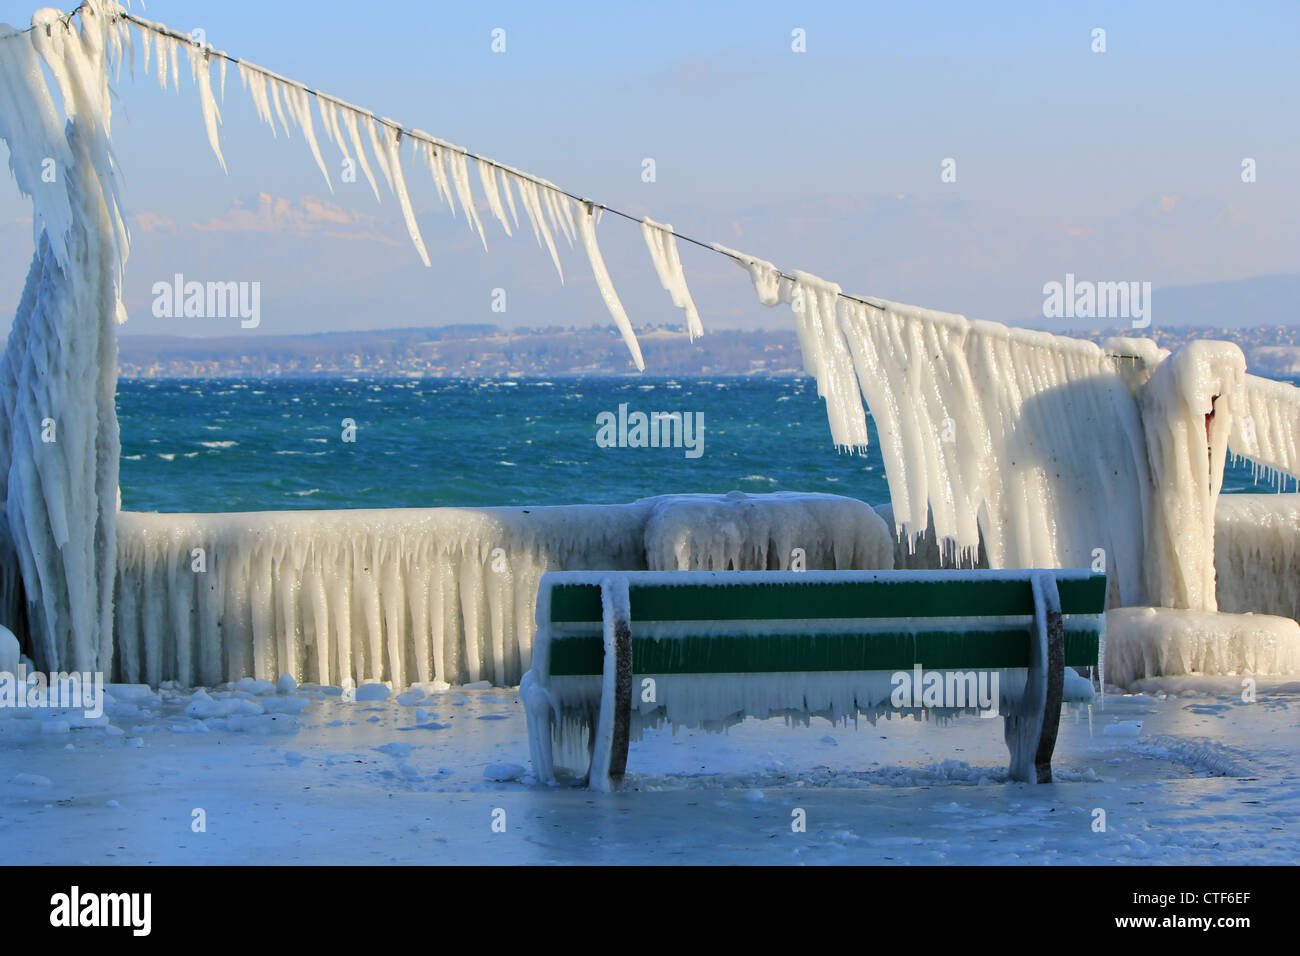 Frozen bench because of cold winter temperature and waves at Nyon, Switzerland - Stock Image